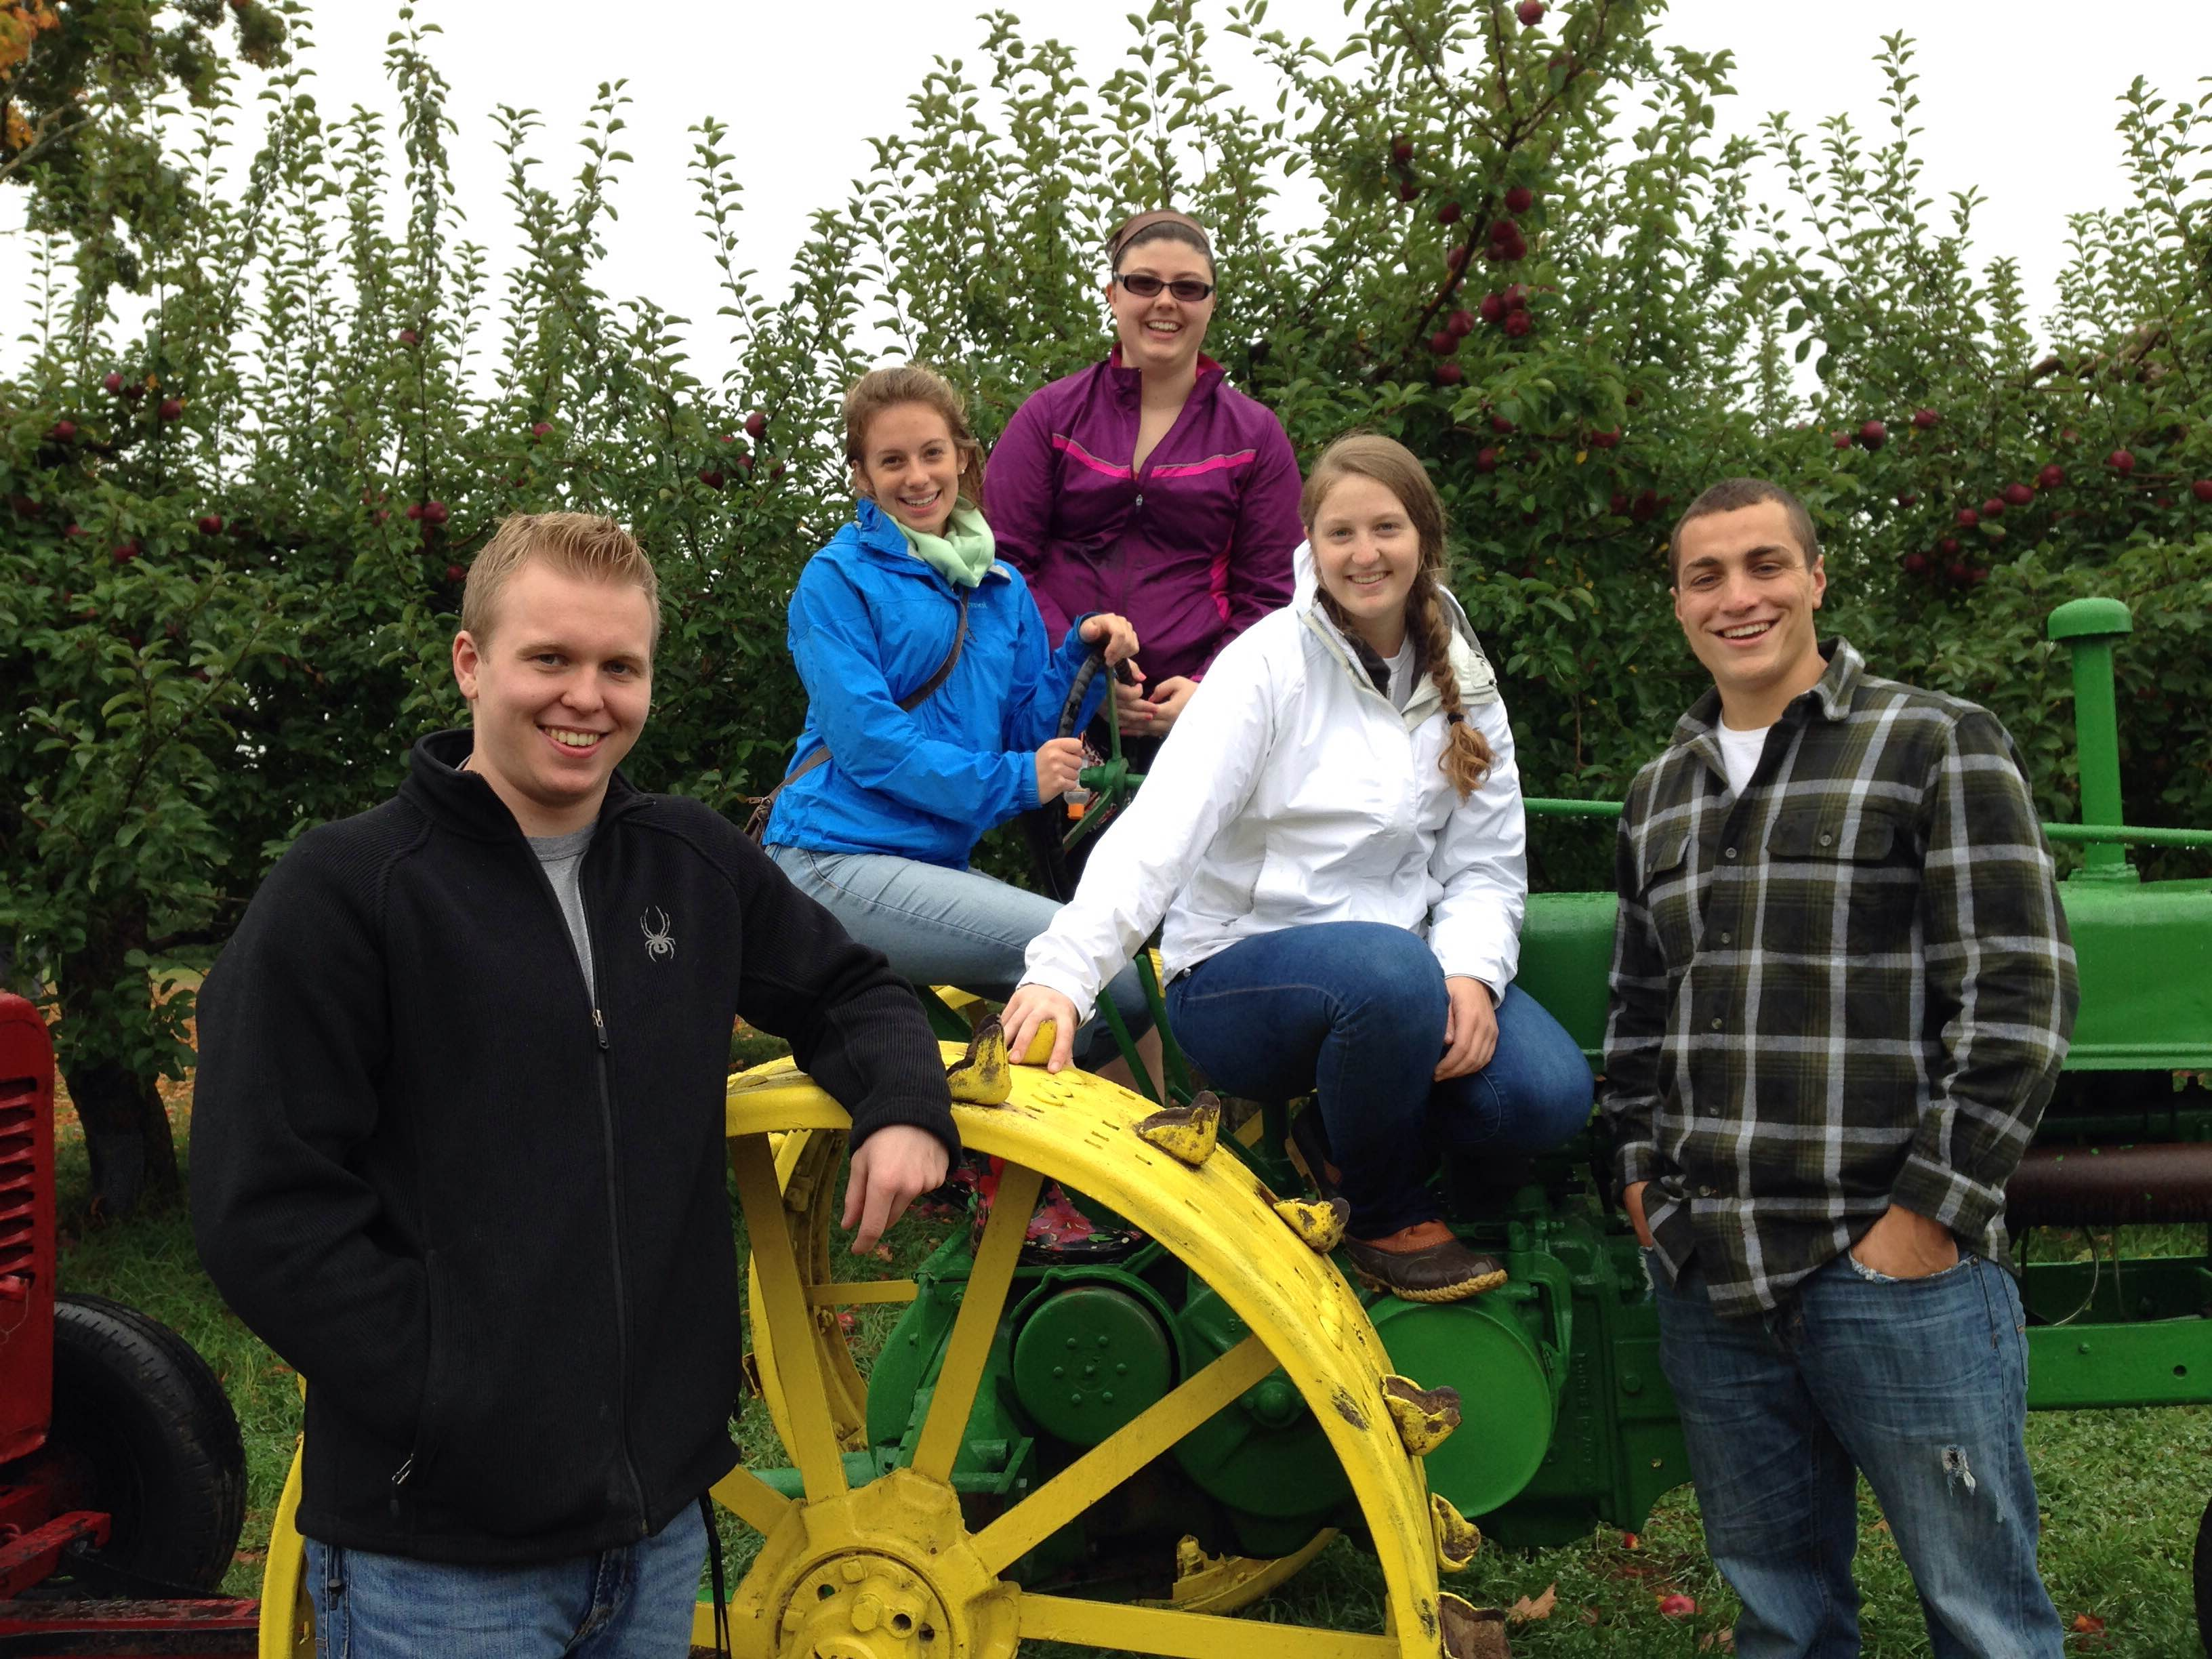 Students sitting on a tractor in an apple orchard.